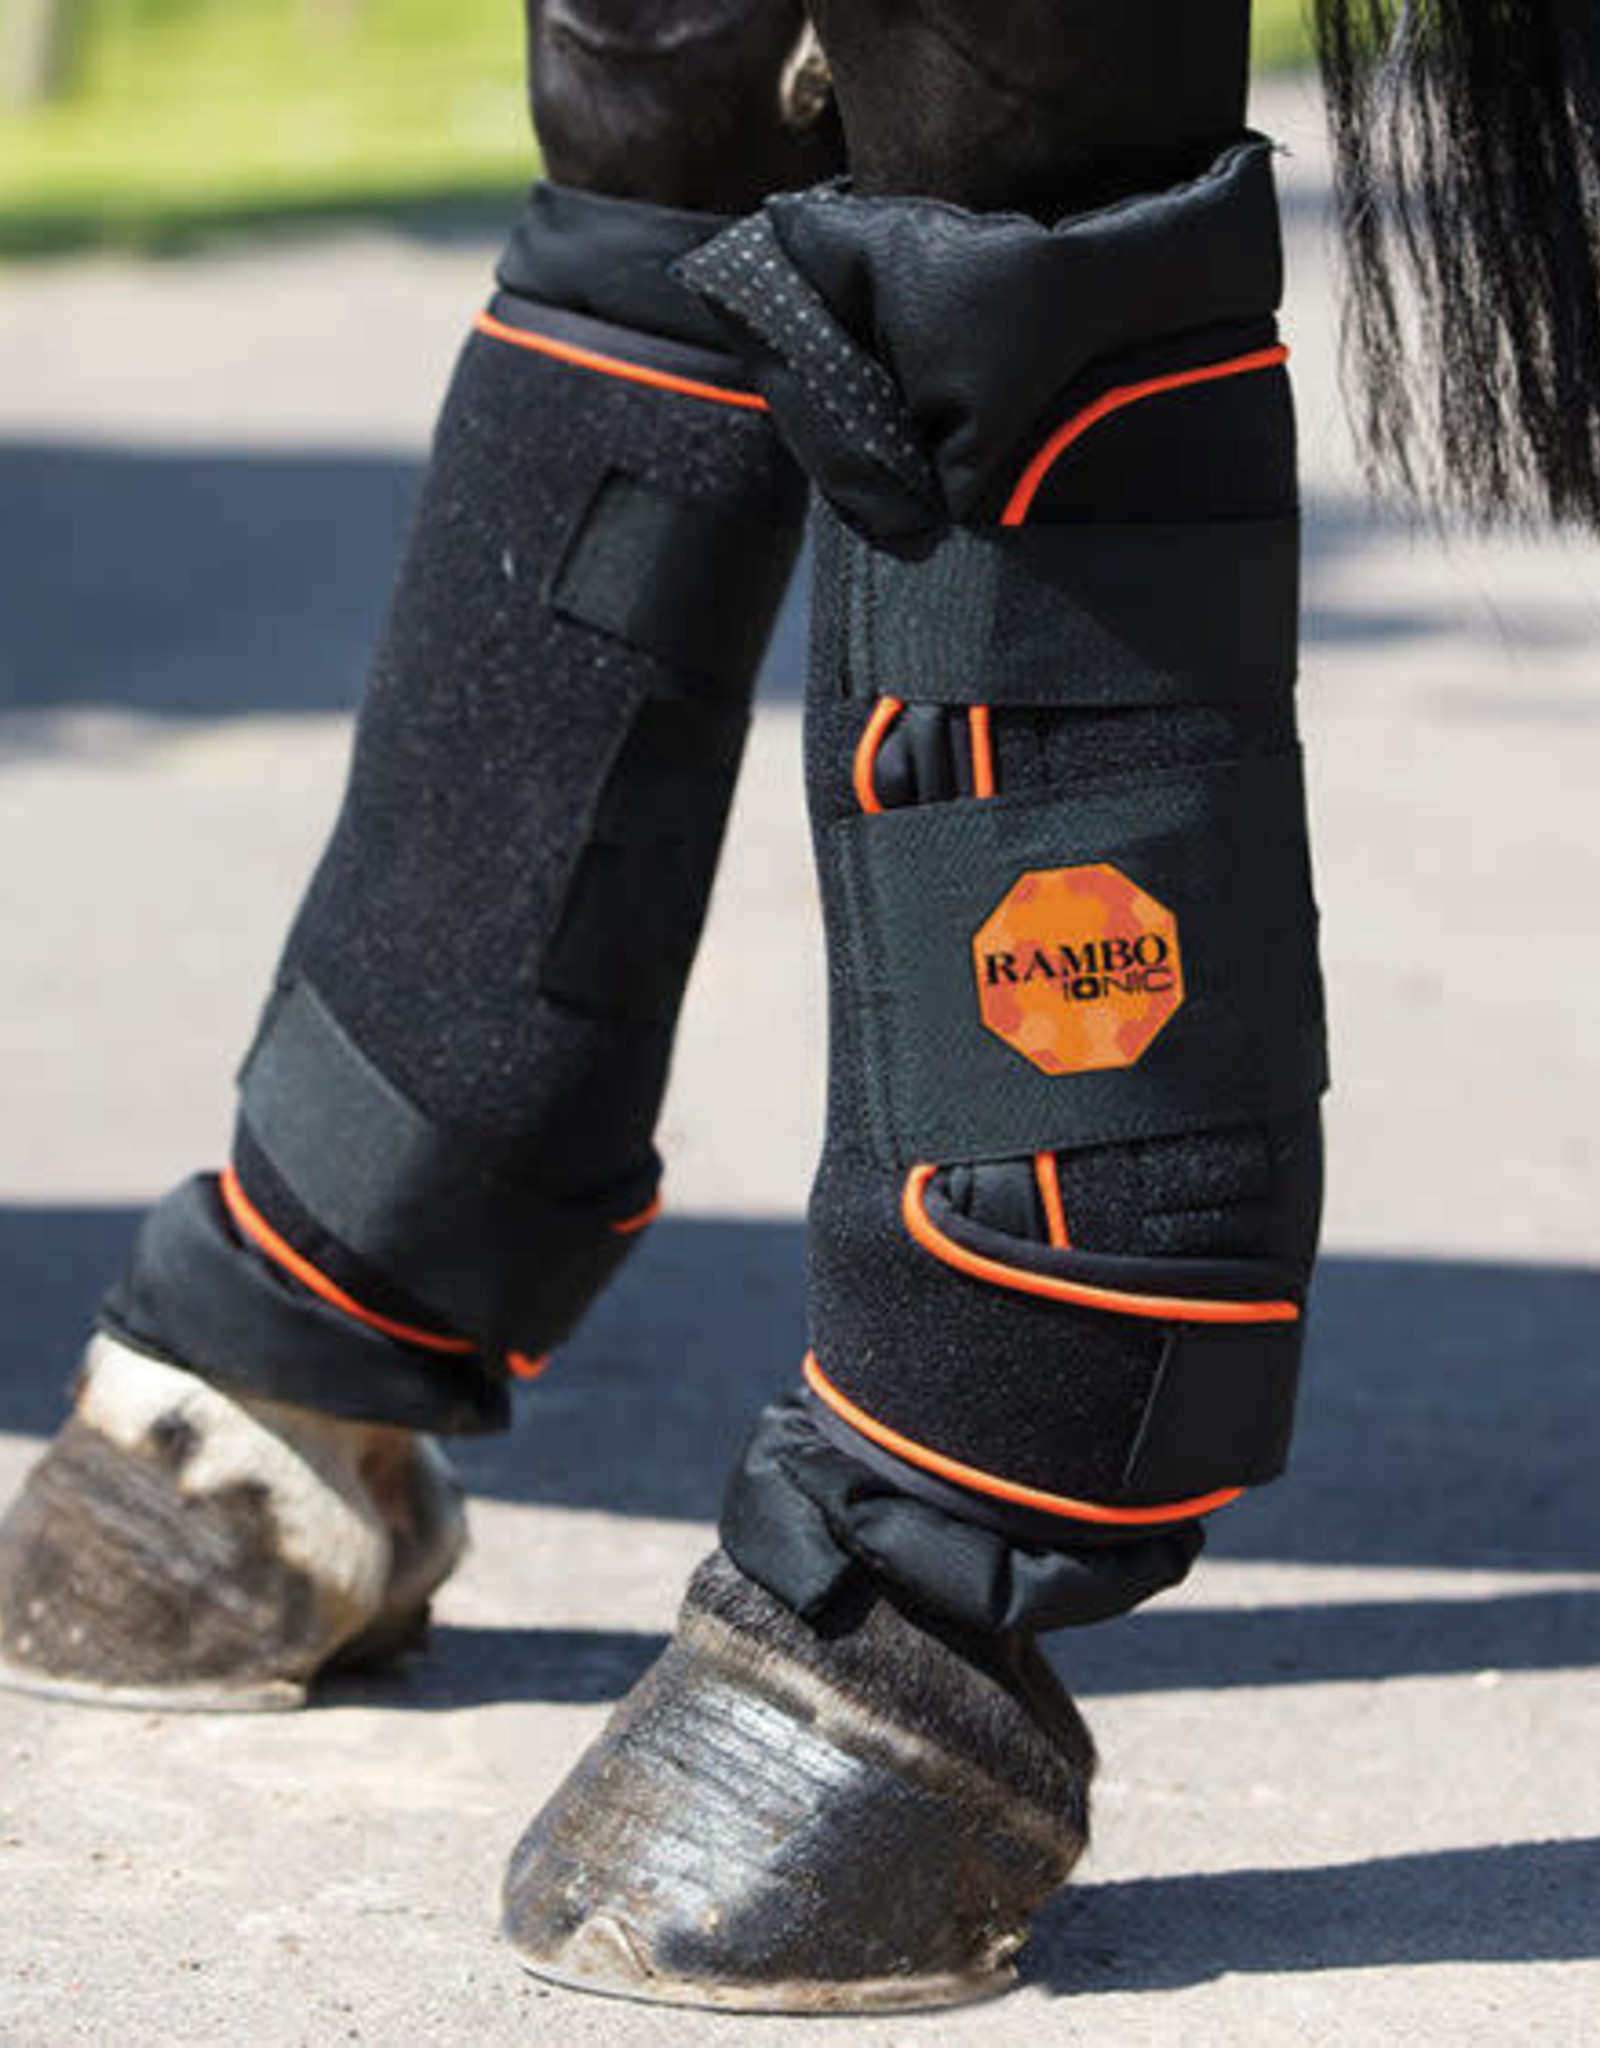 RAMBO IONIC STABLE BOOTS - PAIR